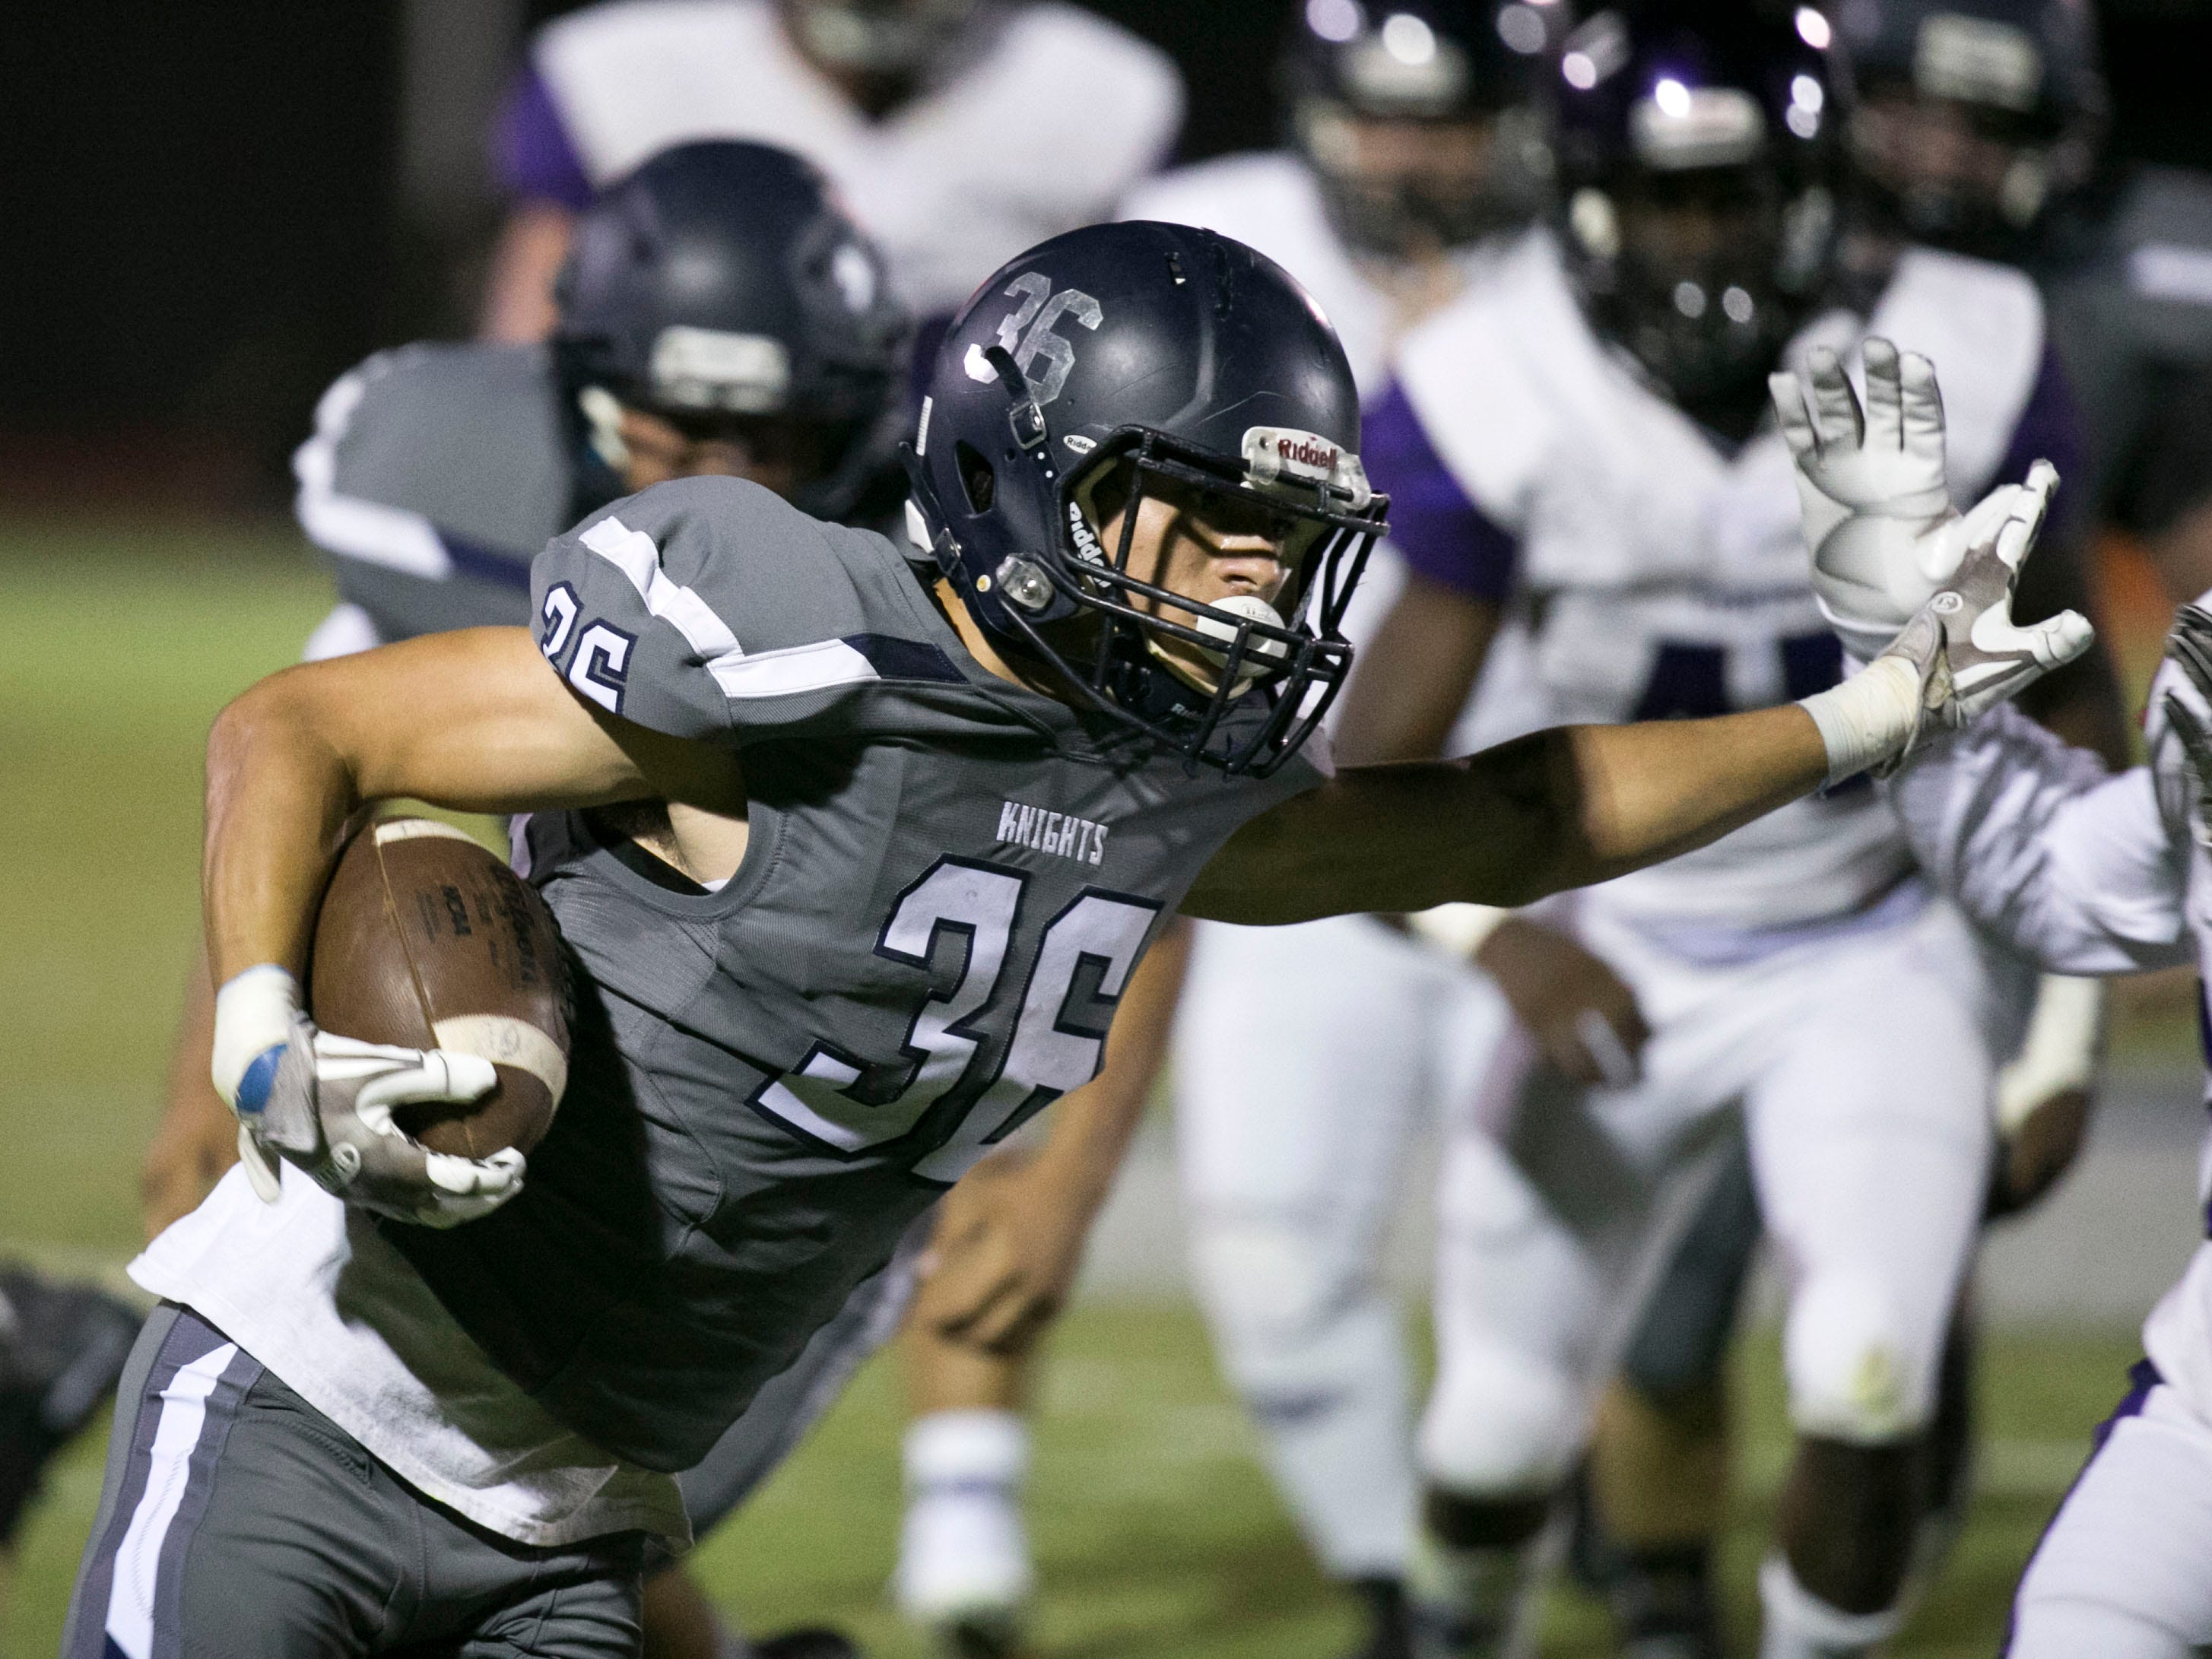 Higley High running back Noah Montano carries the ball  against Millennium High during the second quarter of the high school football game at Higley High in Gilbert on Friday evening, September 14, 2018.